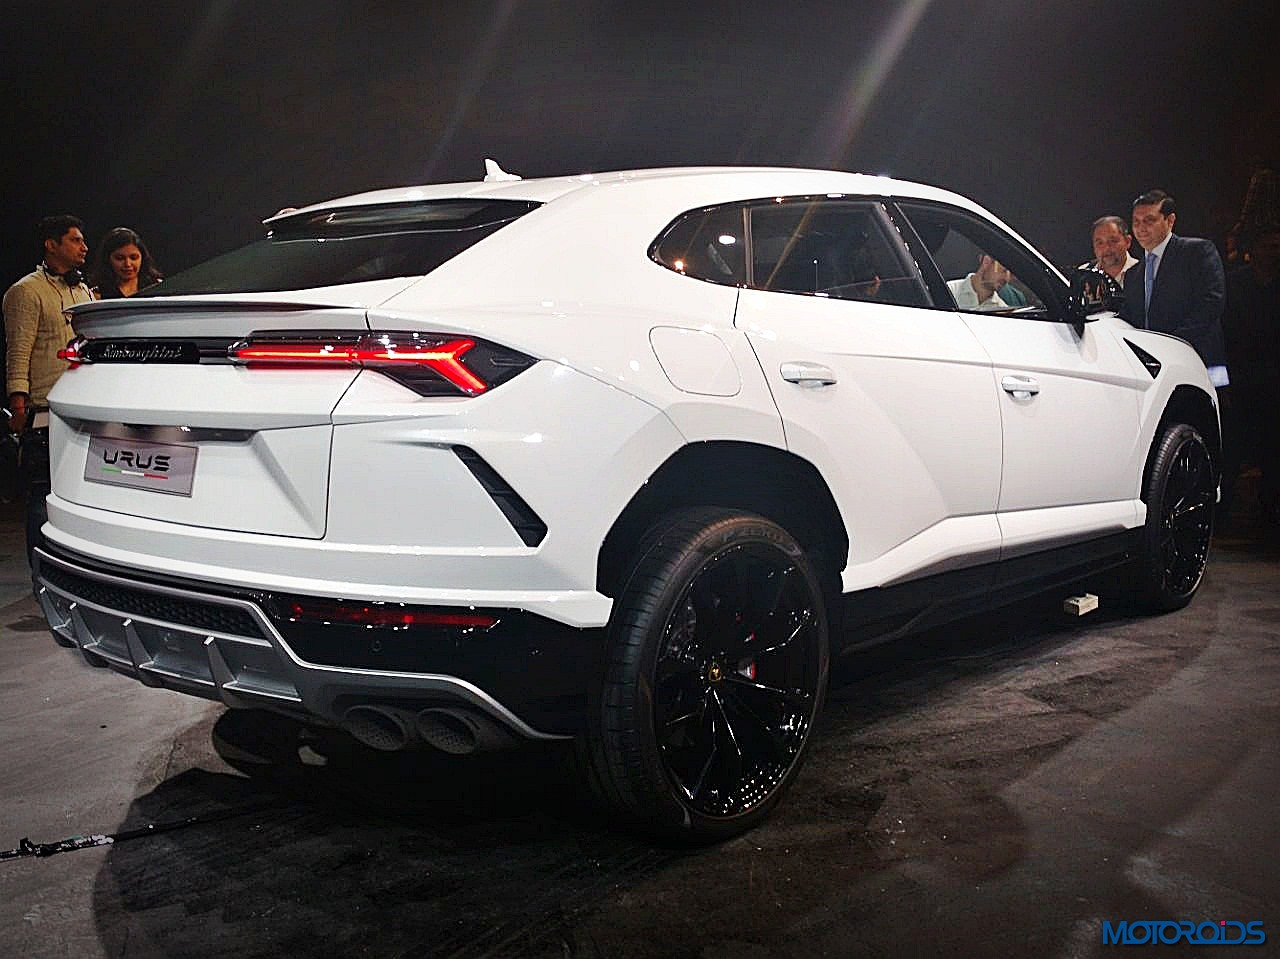 lamborghini urus india launch official release features price and image gallery motoroids. Black Bedroom Furniture Sets. Home Design Ideas